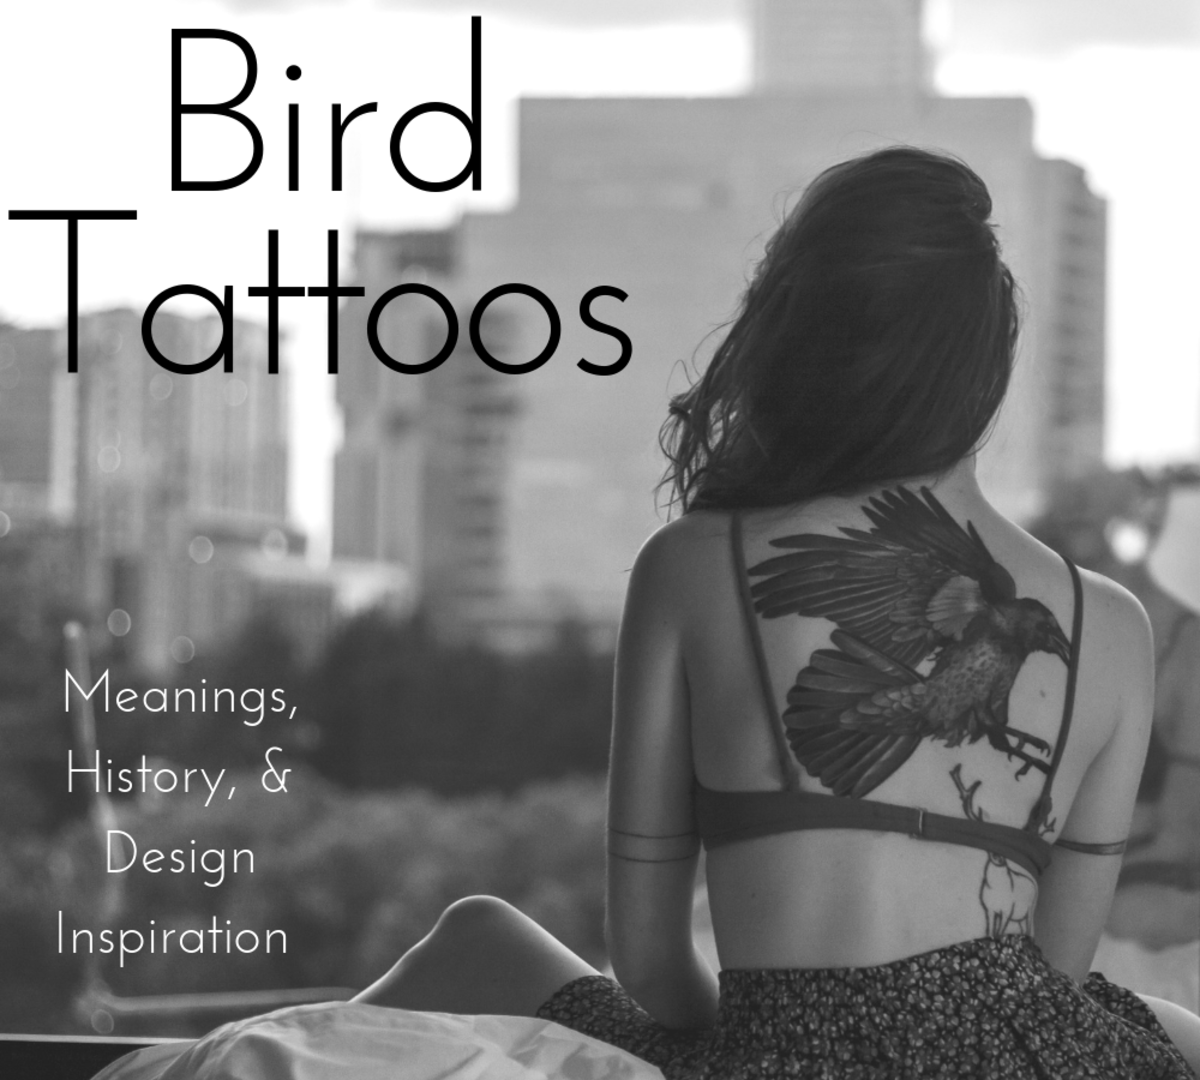 Bird Tattoos Interpreted: What Various Birds Mean & Represent